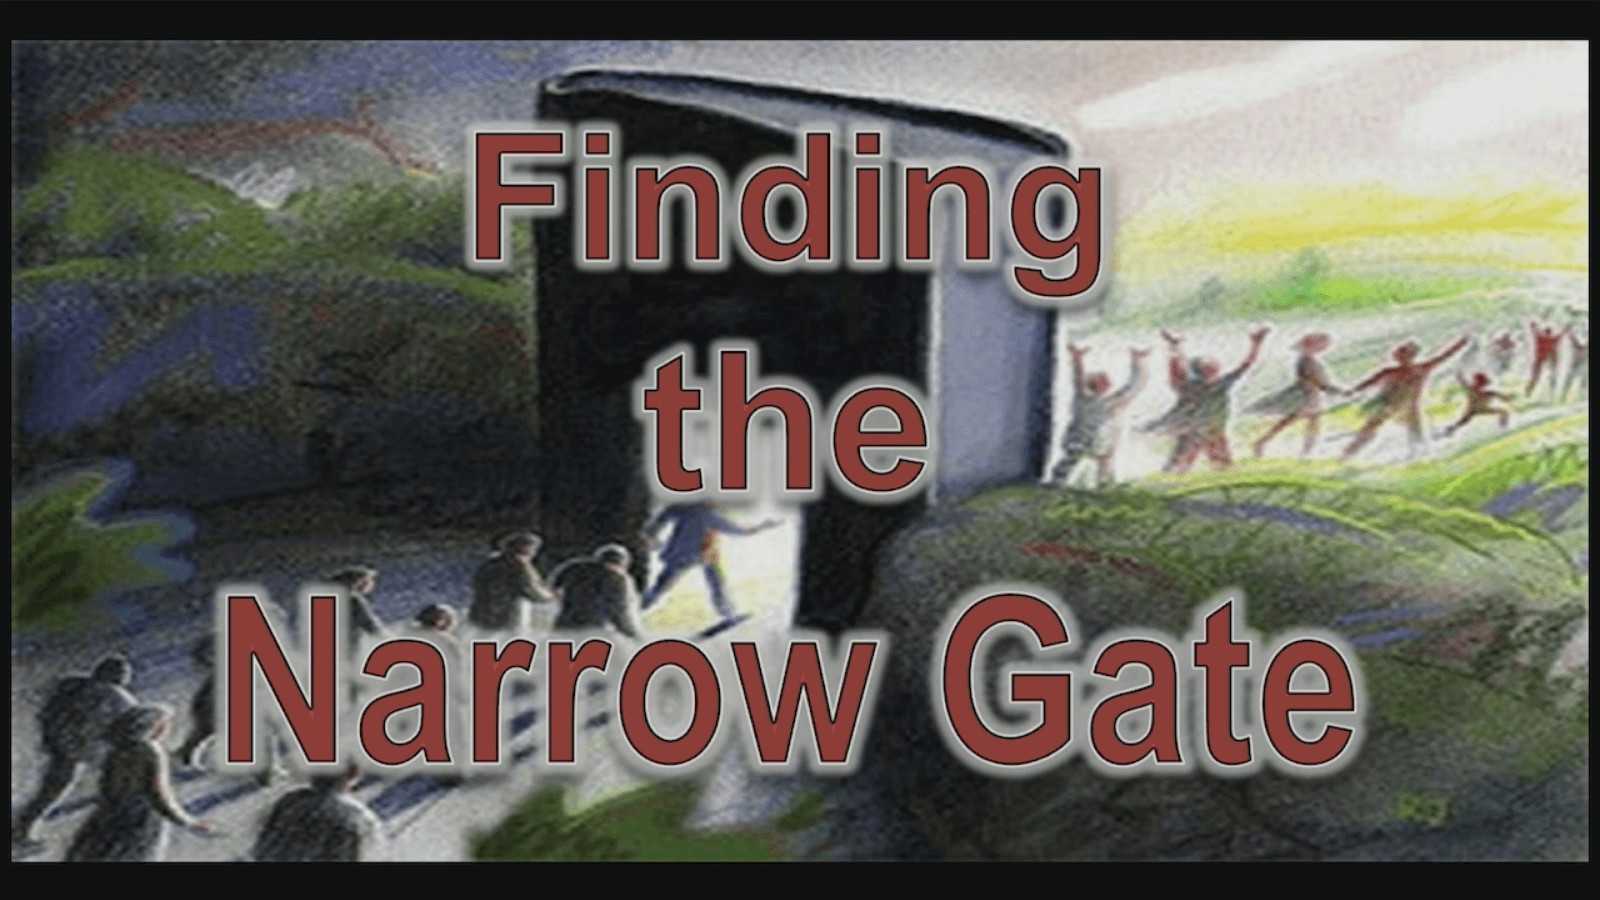 Finding the Narrow Gate